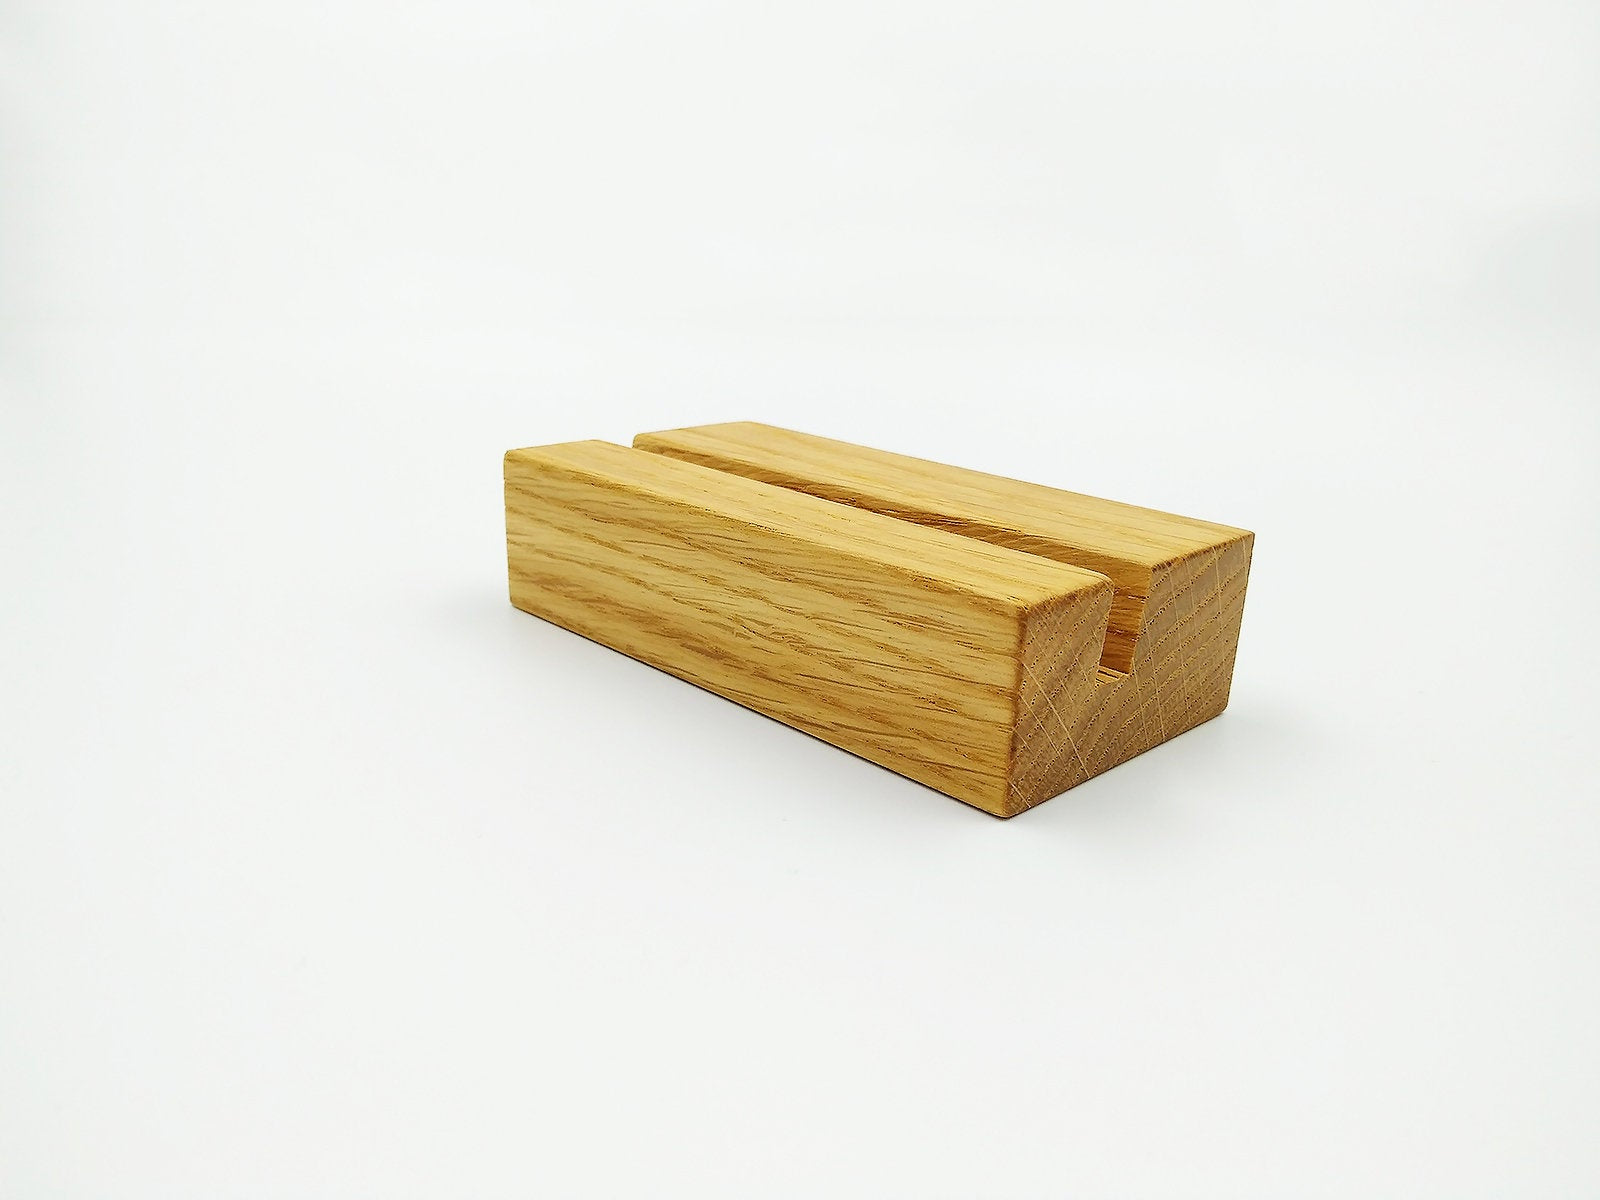 Oak Wood Business Card Holder. Business Card Stand for Desk